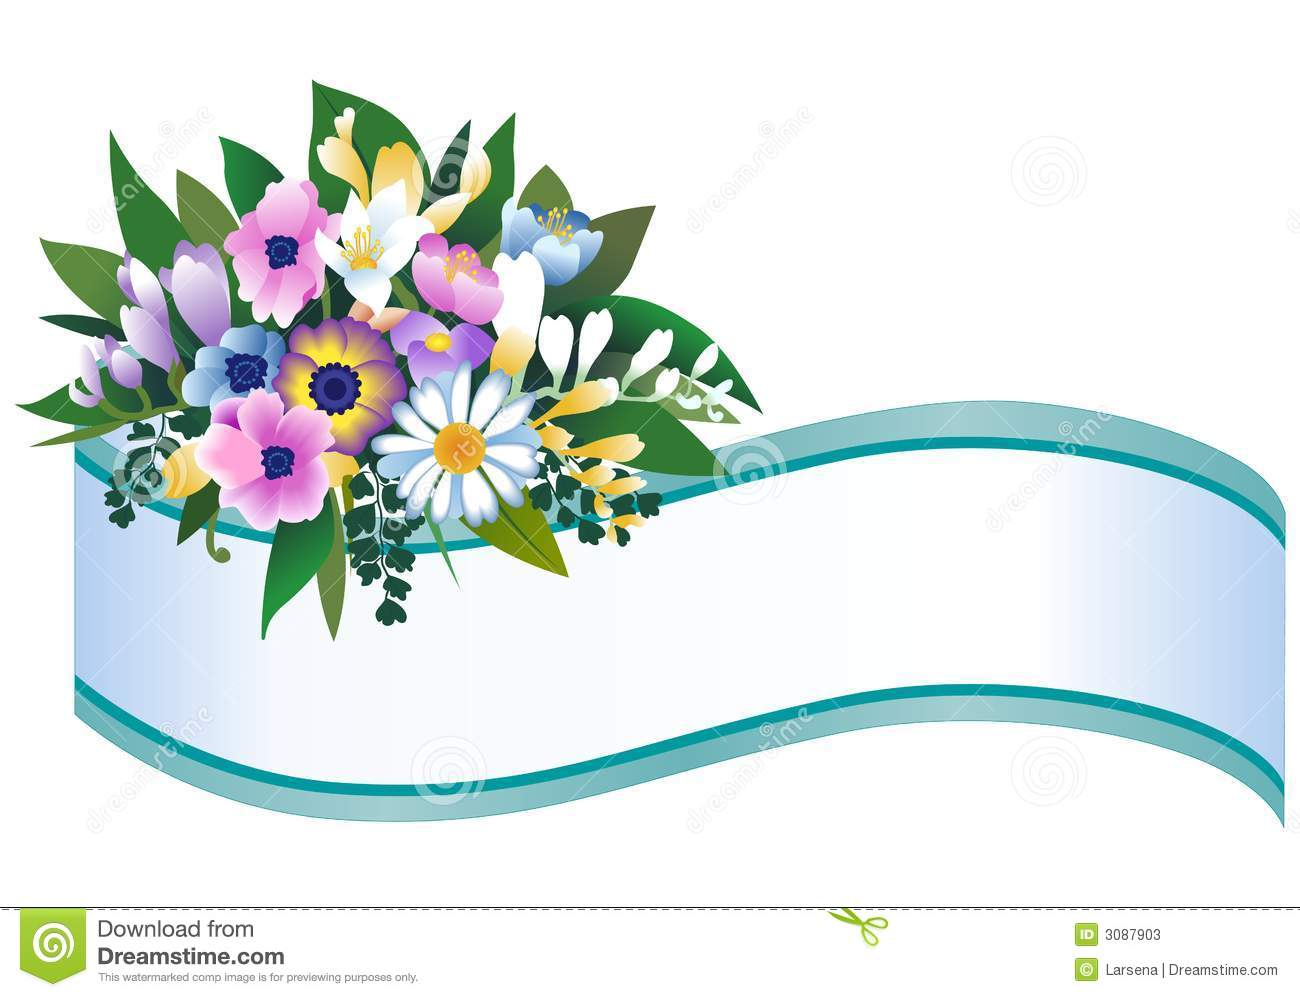 Decorative banner with bouquet of flowers.